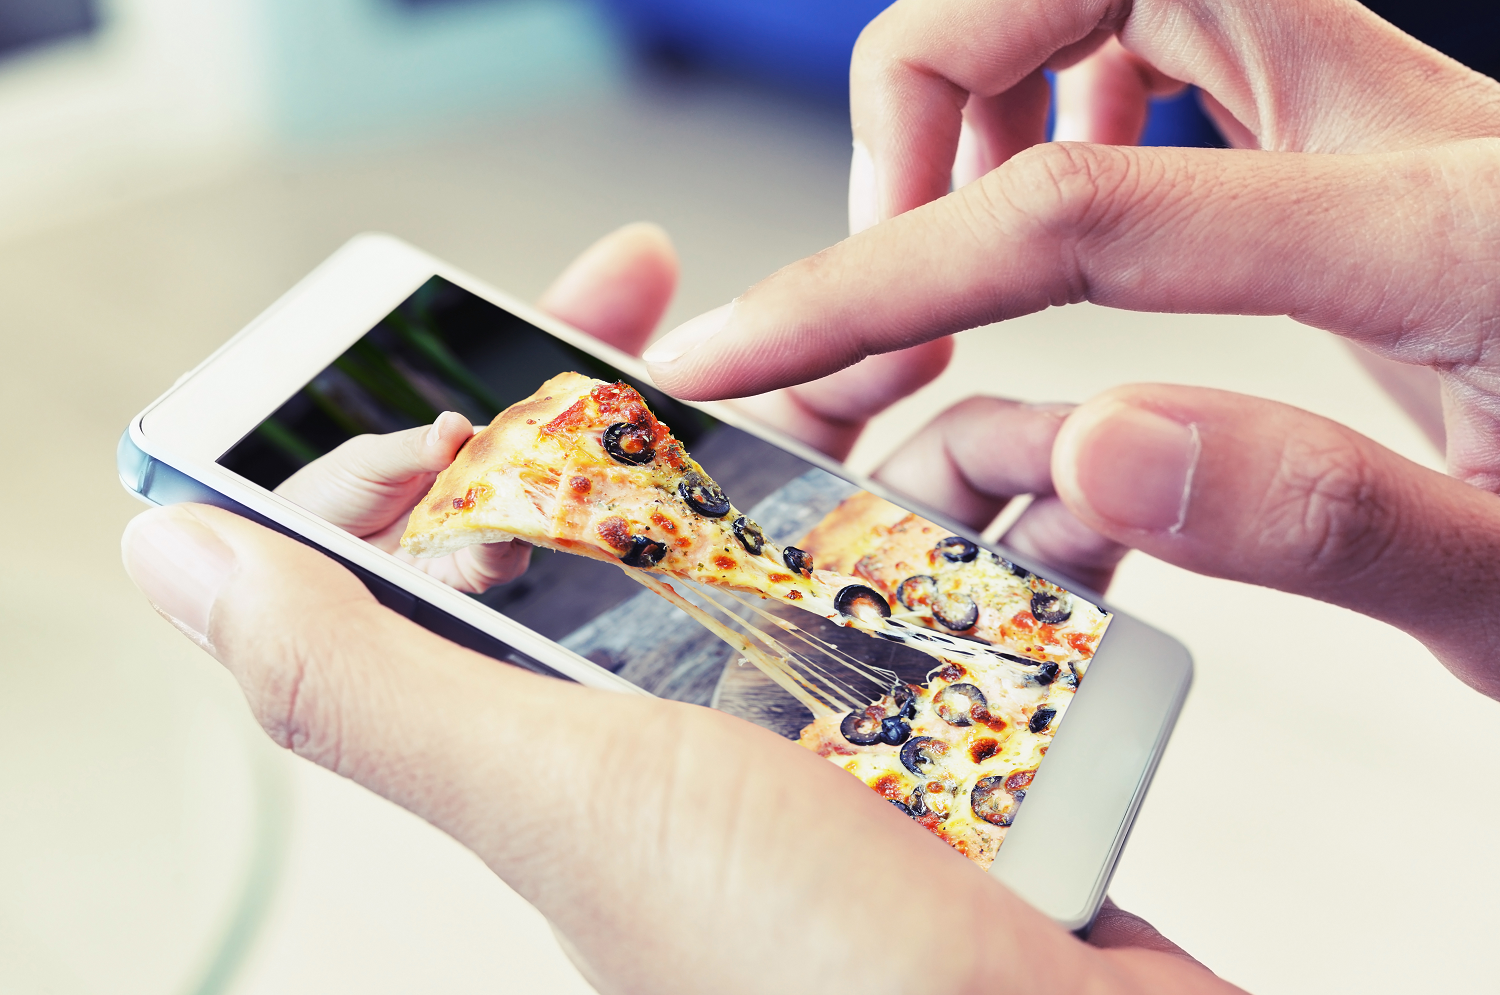 Technology and sustainability top of mind for F&B market